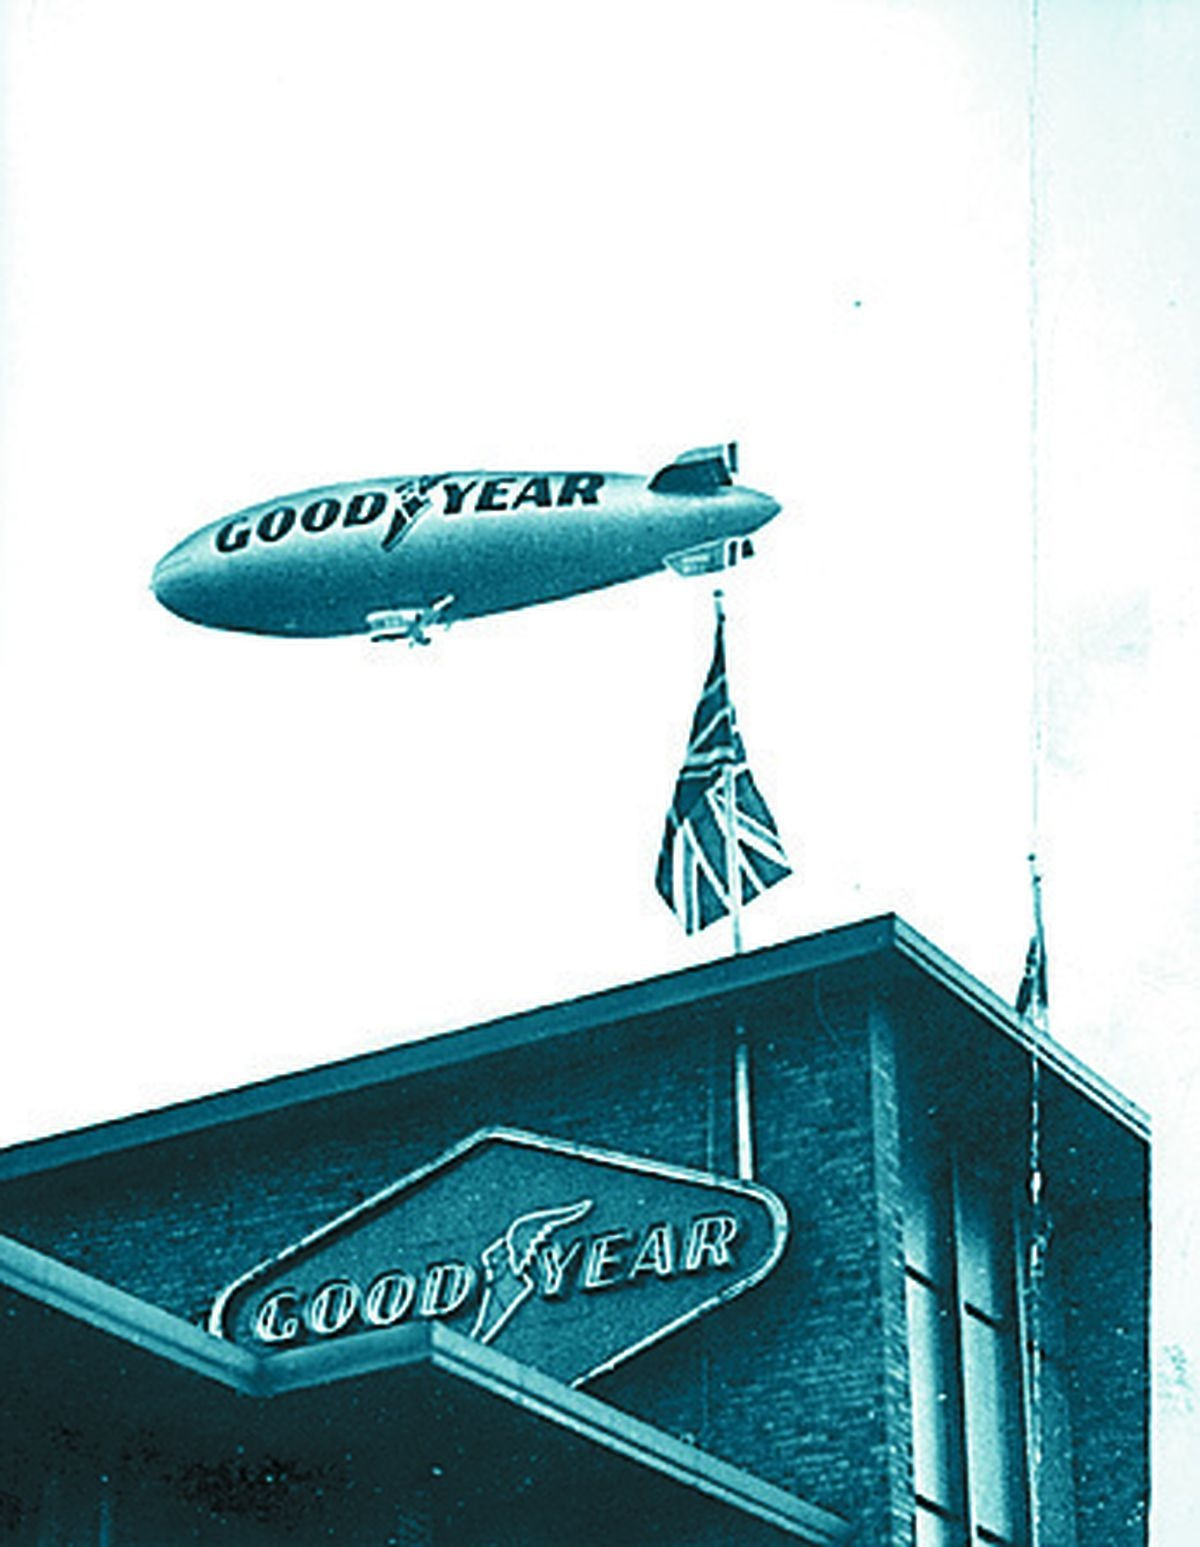 Europa flying over the Goodyear factory in Wolverhampton in July 1972